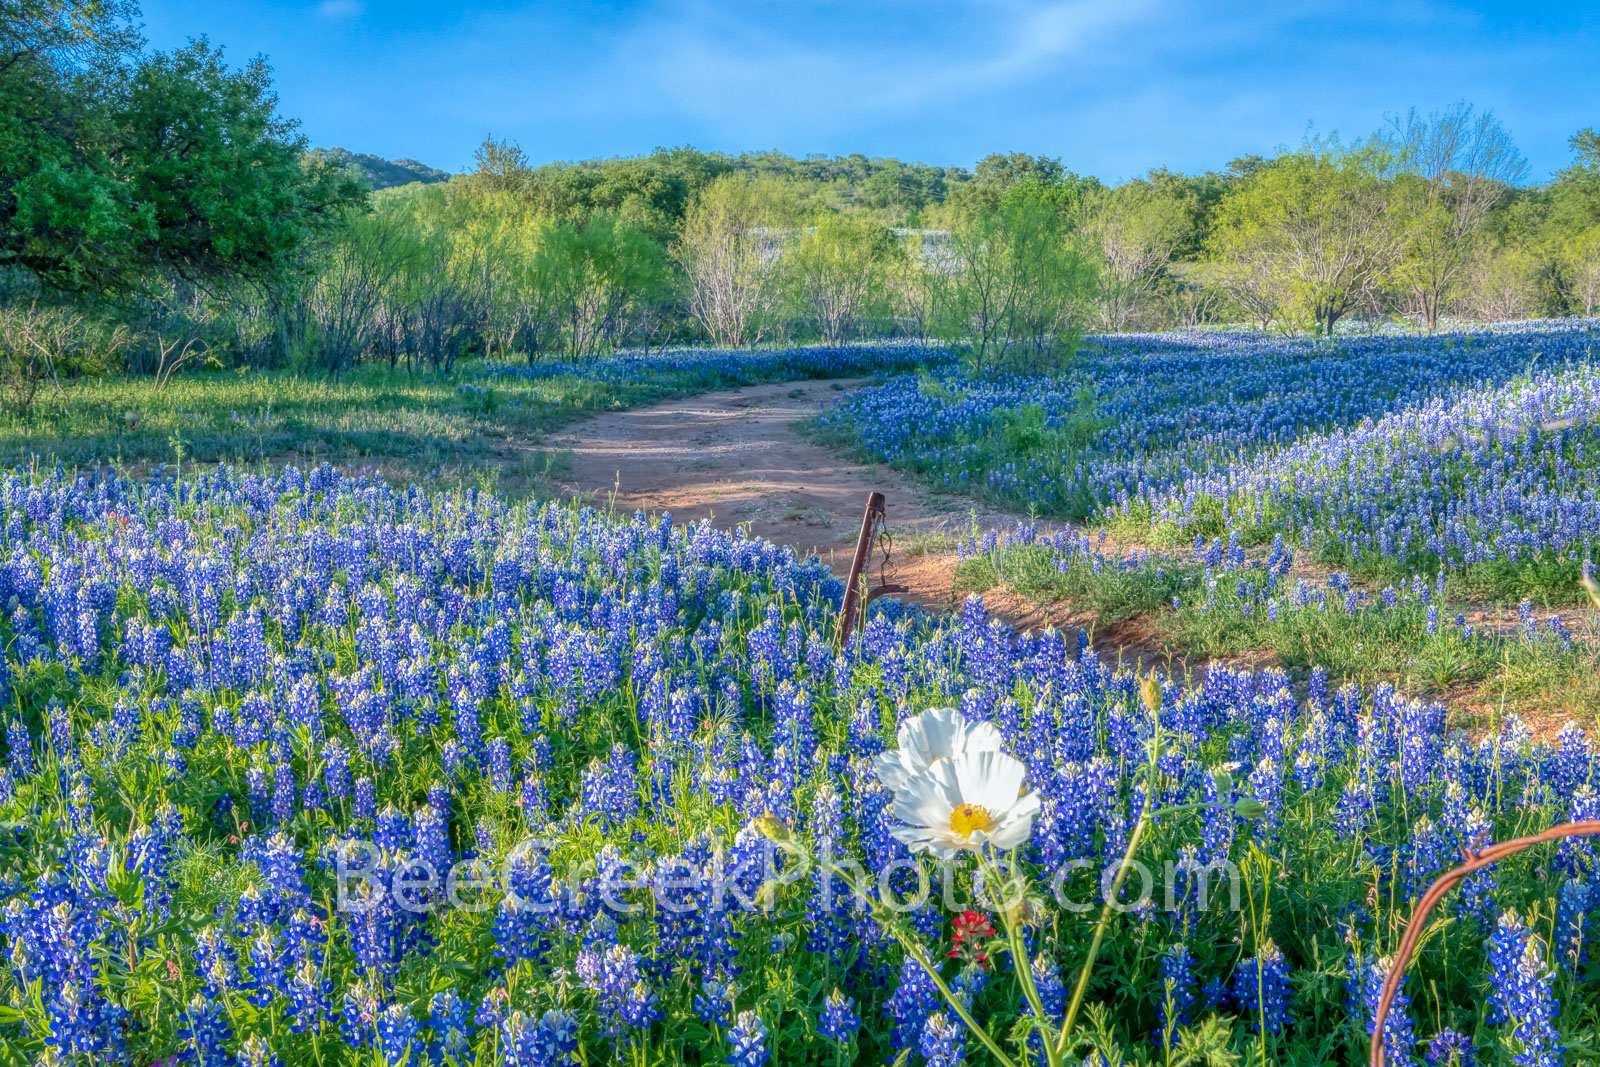 poppies, texas bluebonnets, bluebonnets, texas wildflowers, wildflowers, texas hill country, texas, field of bluebonnets, hill country,  road, mesquite, blue,  images of bluebonnets, pictures of blueb, photo